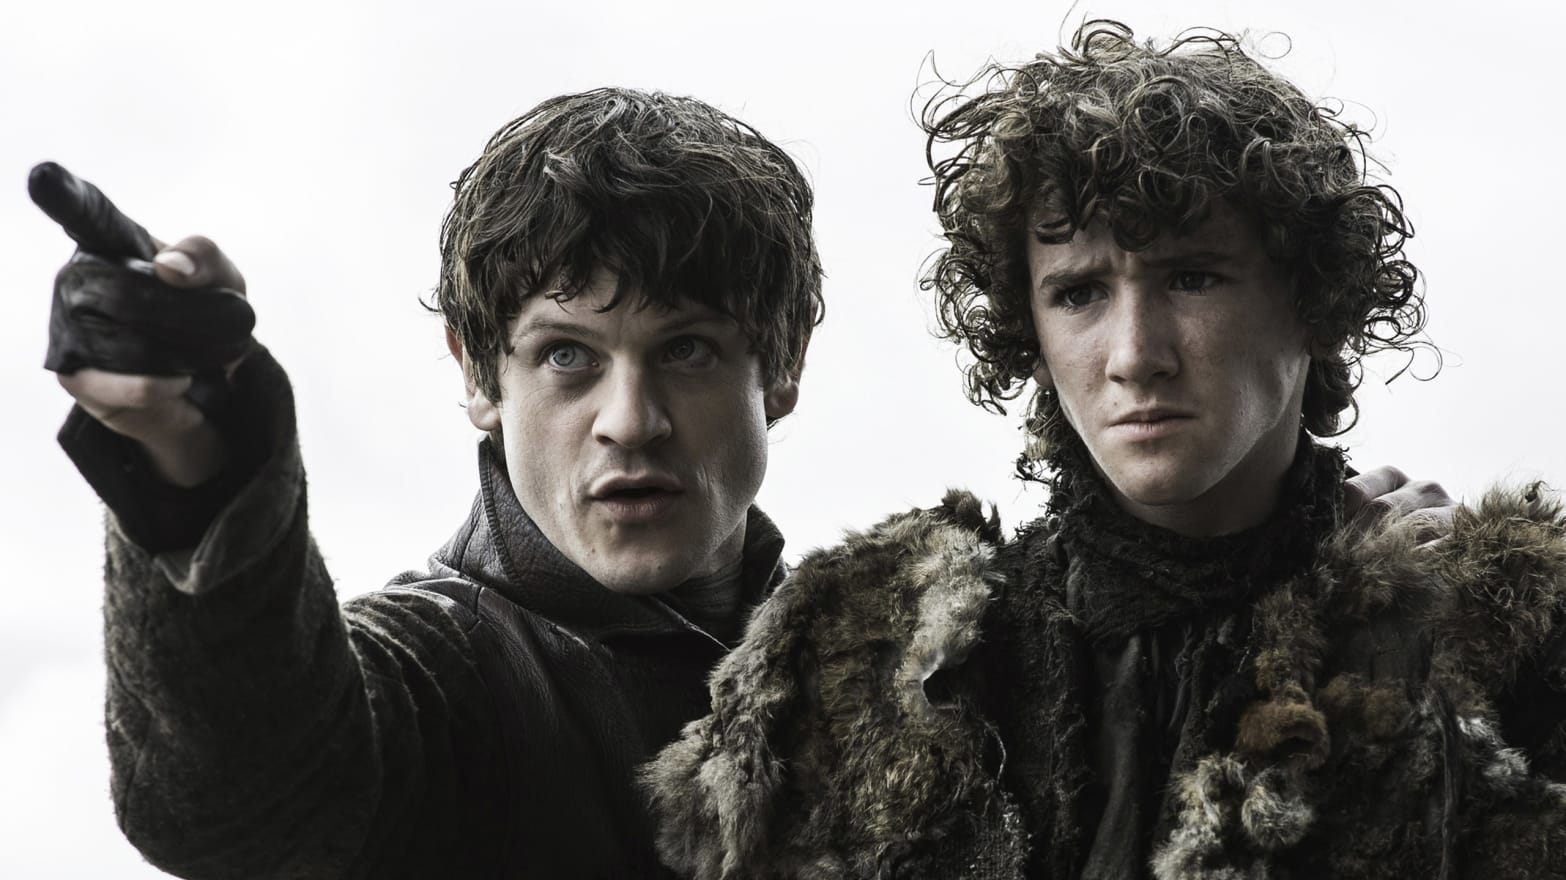 Game of Thrones' Ramsay Bolton on His Gory Demise: 'What a